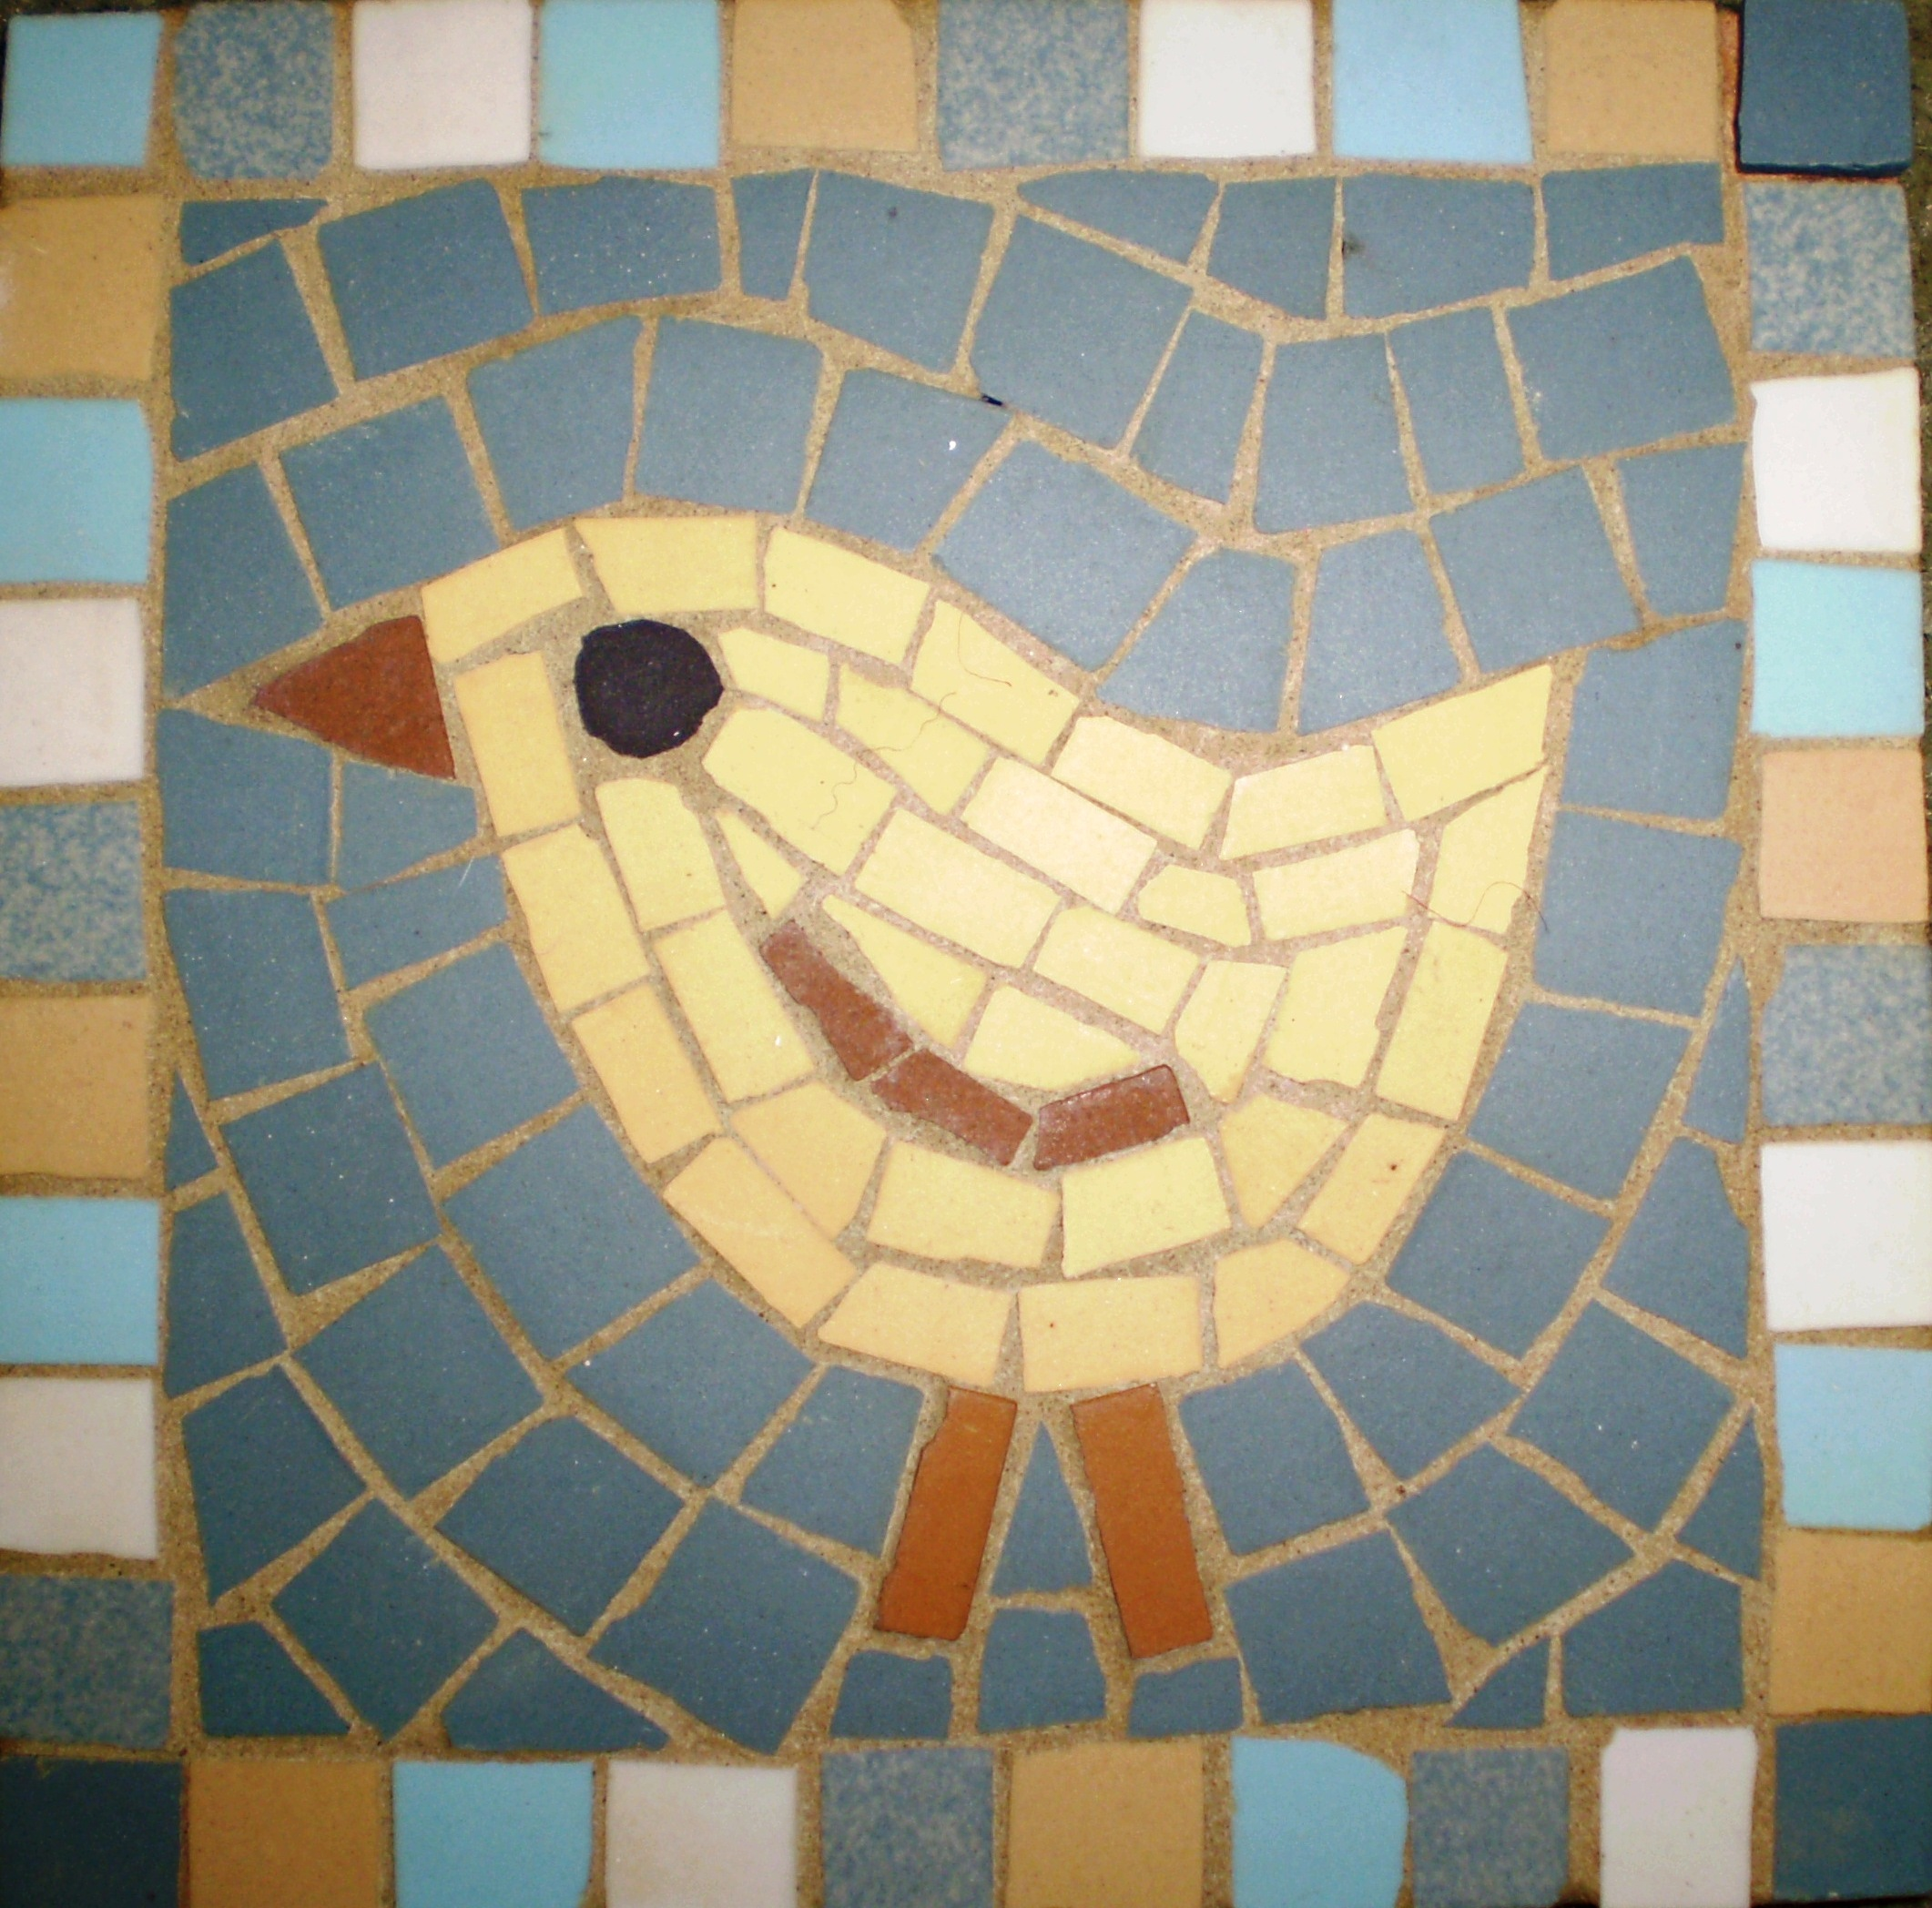 Mosaic Drop-In Workshop for Families